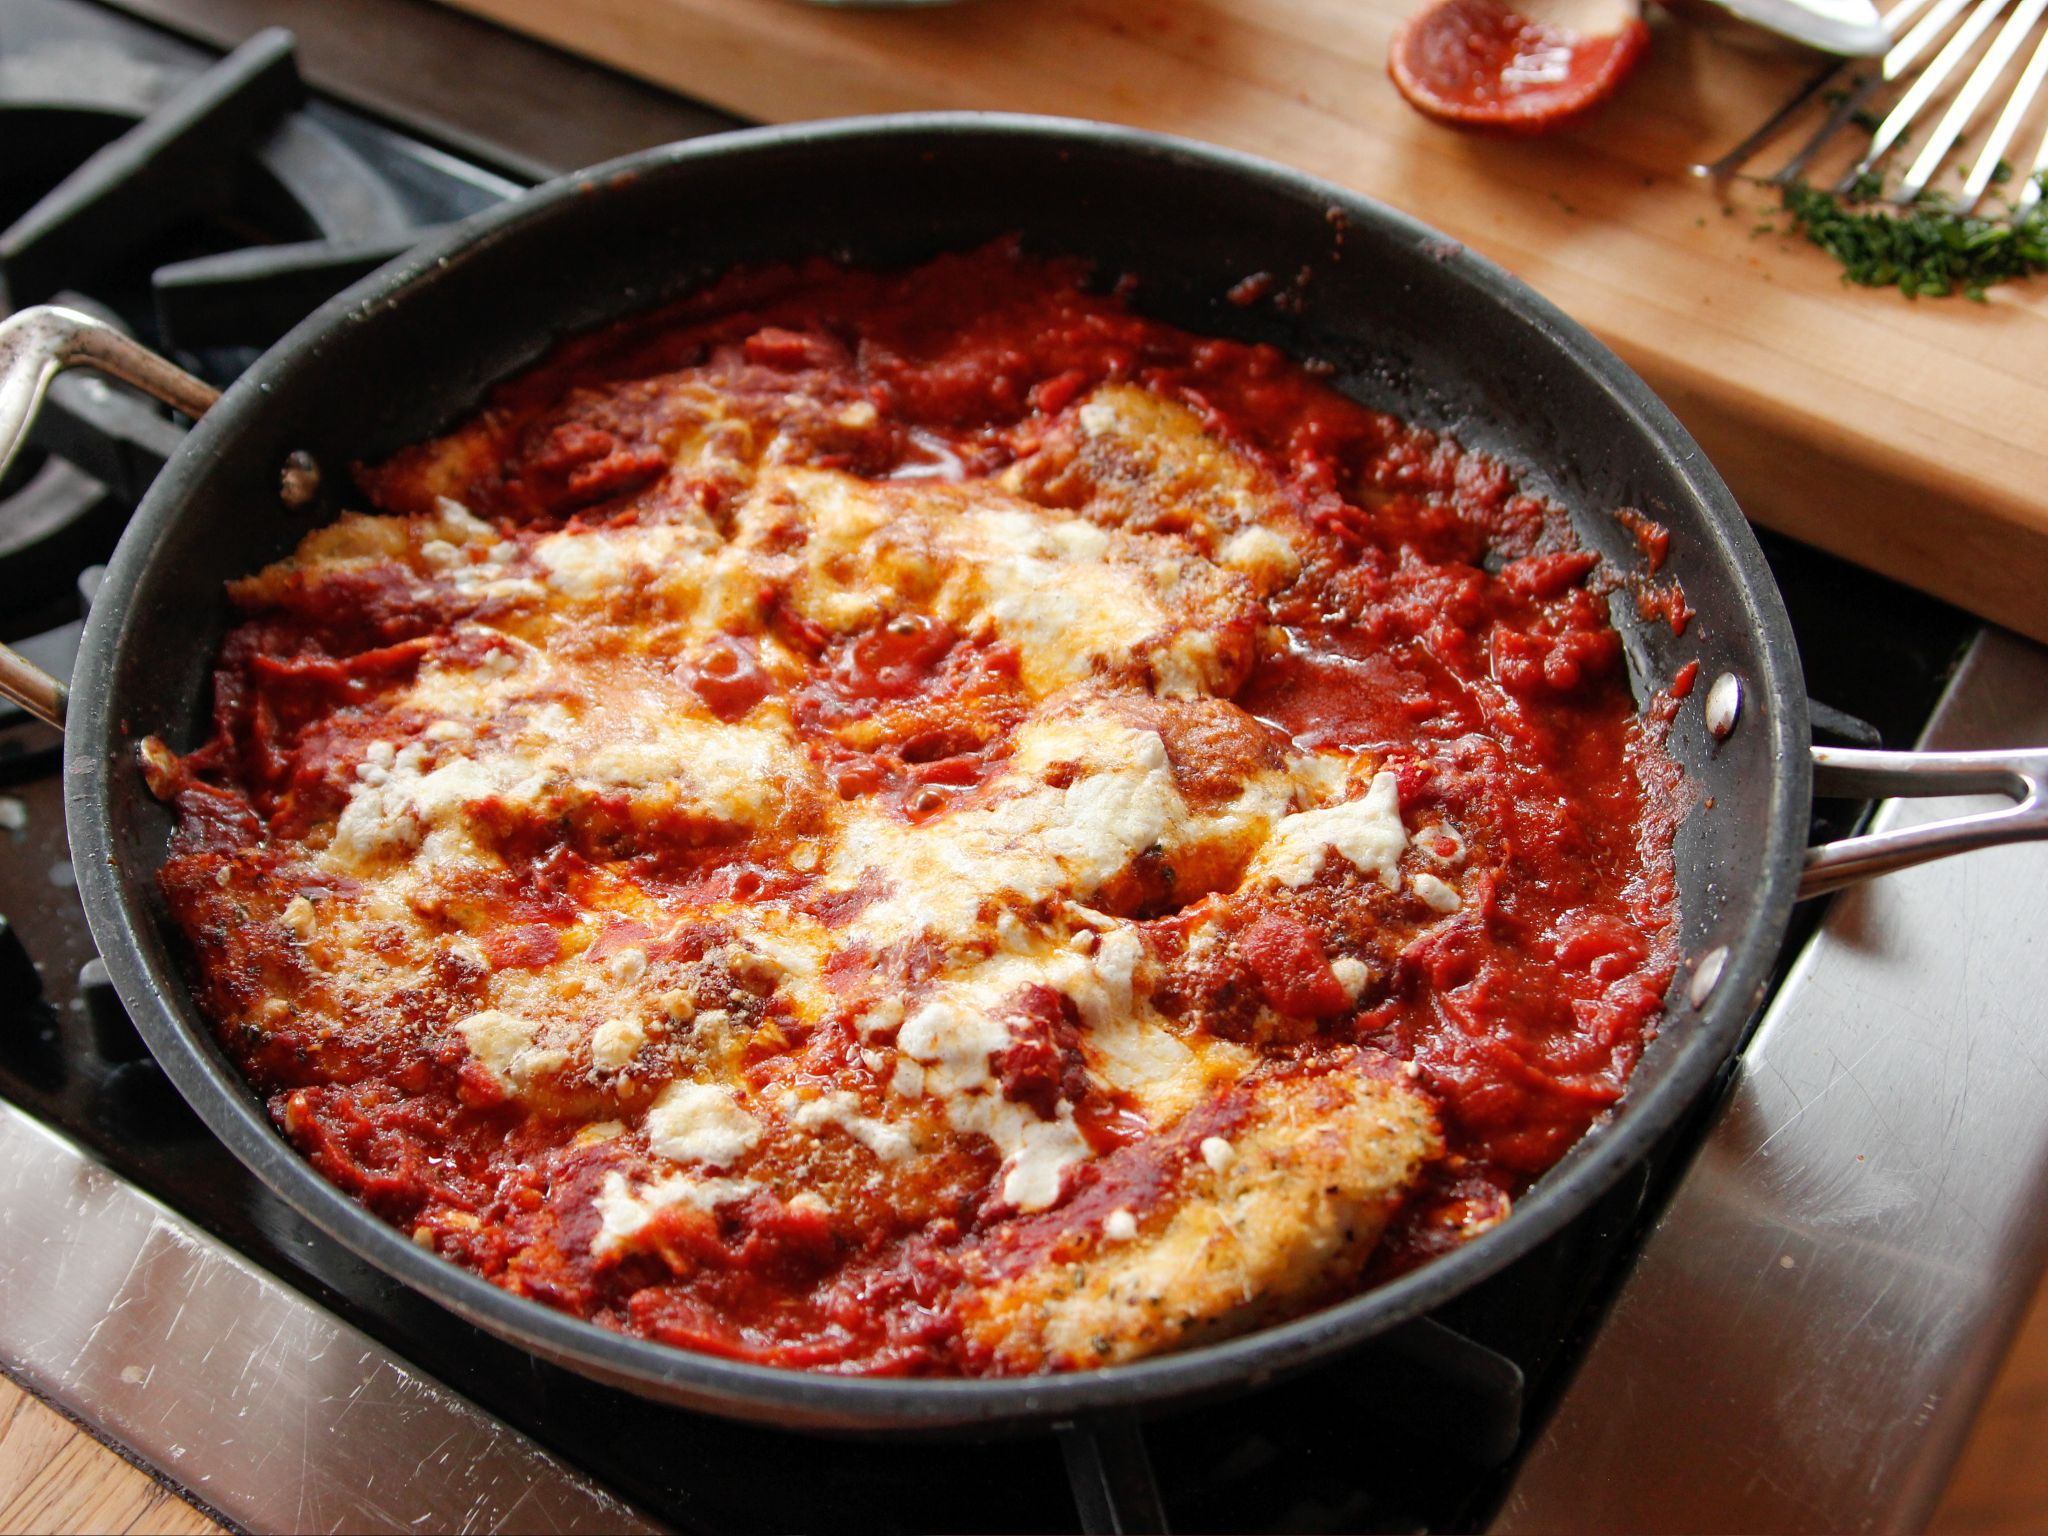 Lighter chicken parmesan recipe chicken parmesan recipes get this all star easy to follow lighter chicken parmesan recipe from forumfinder Image collections